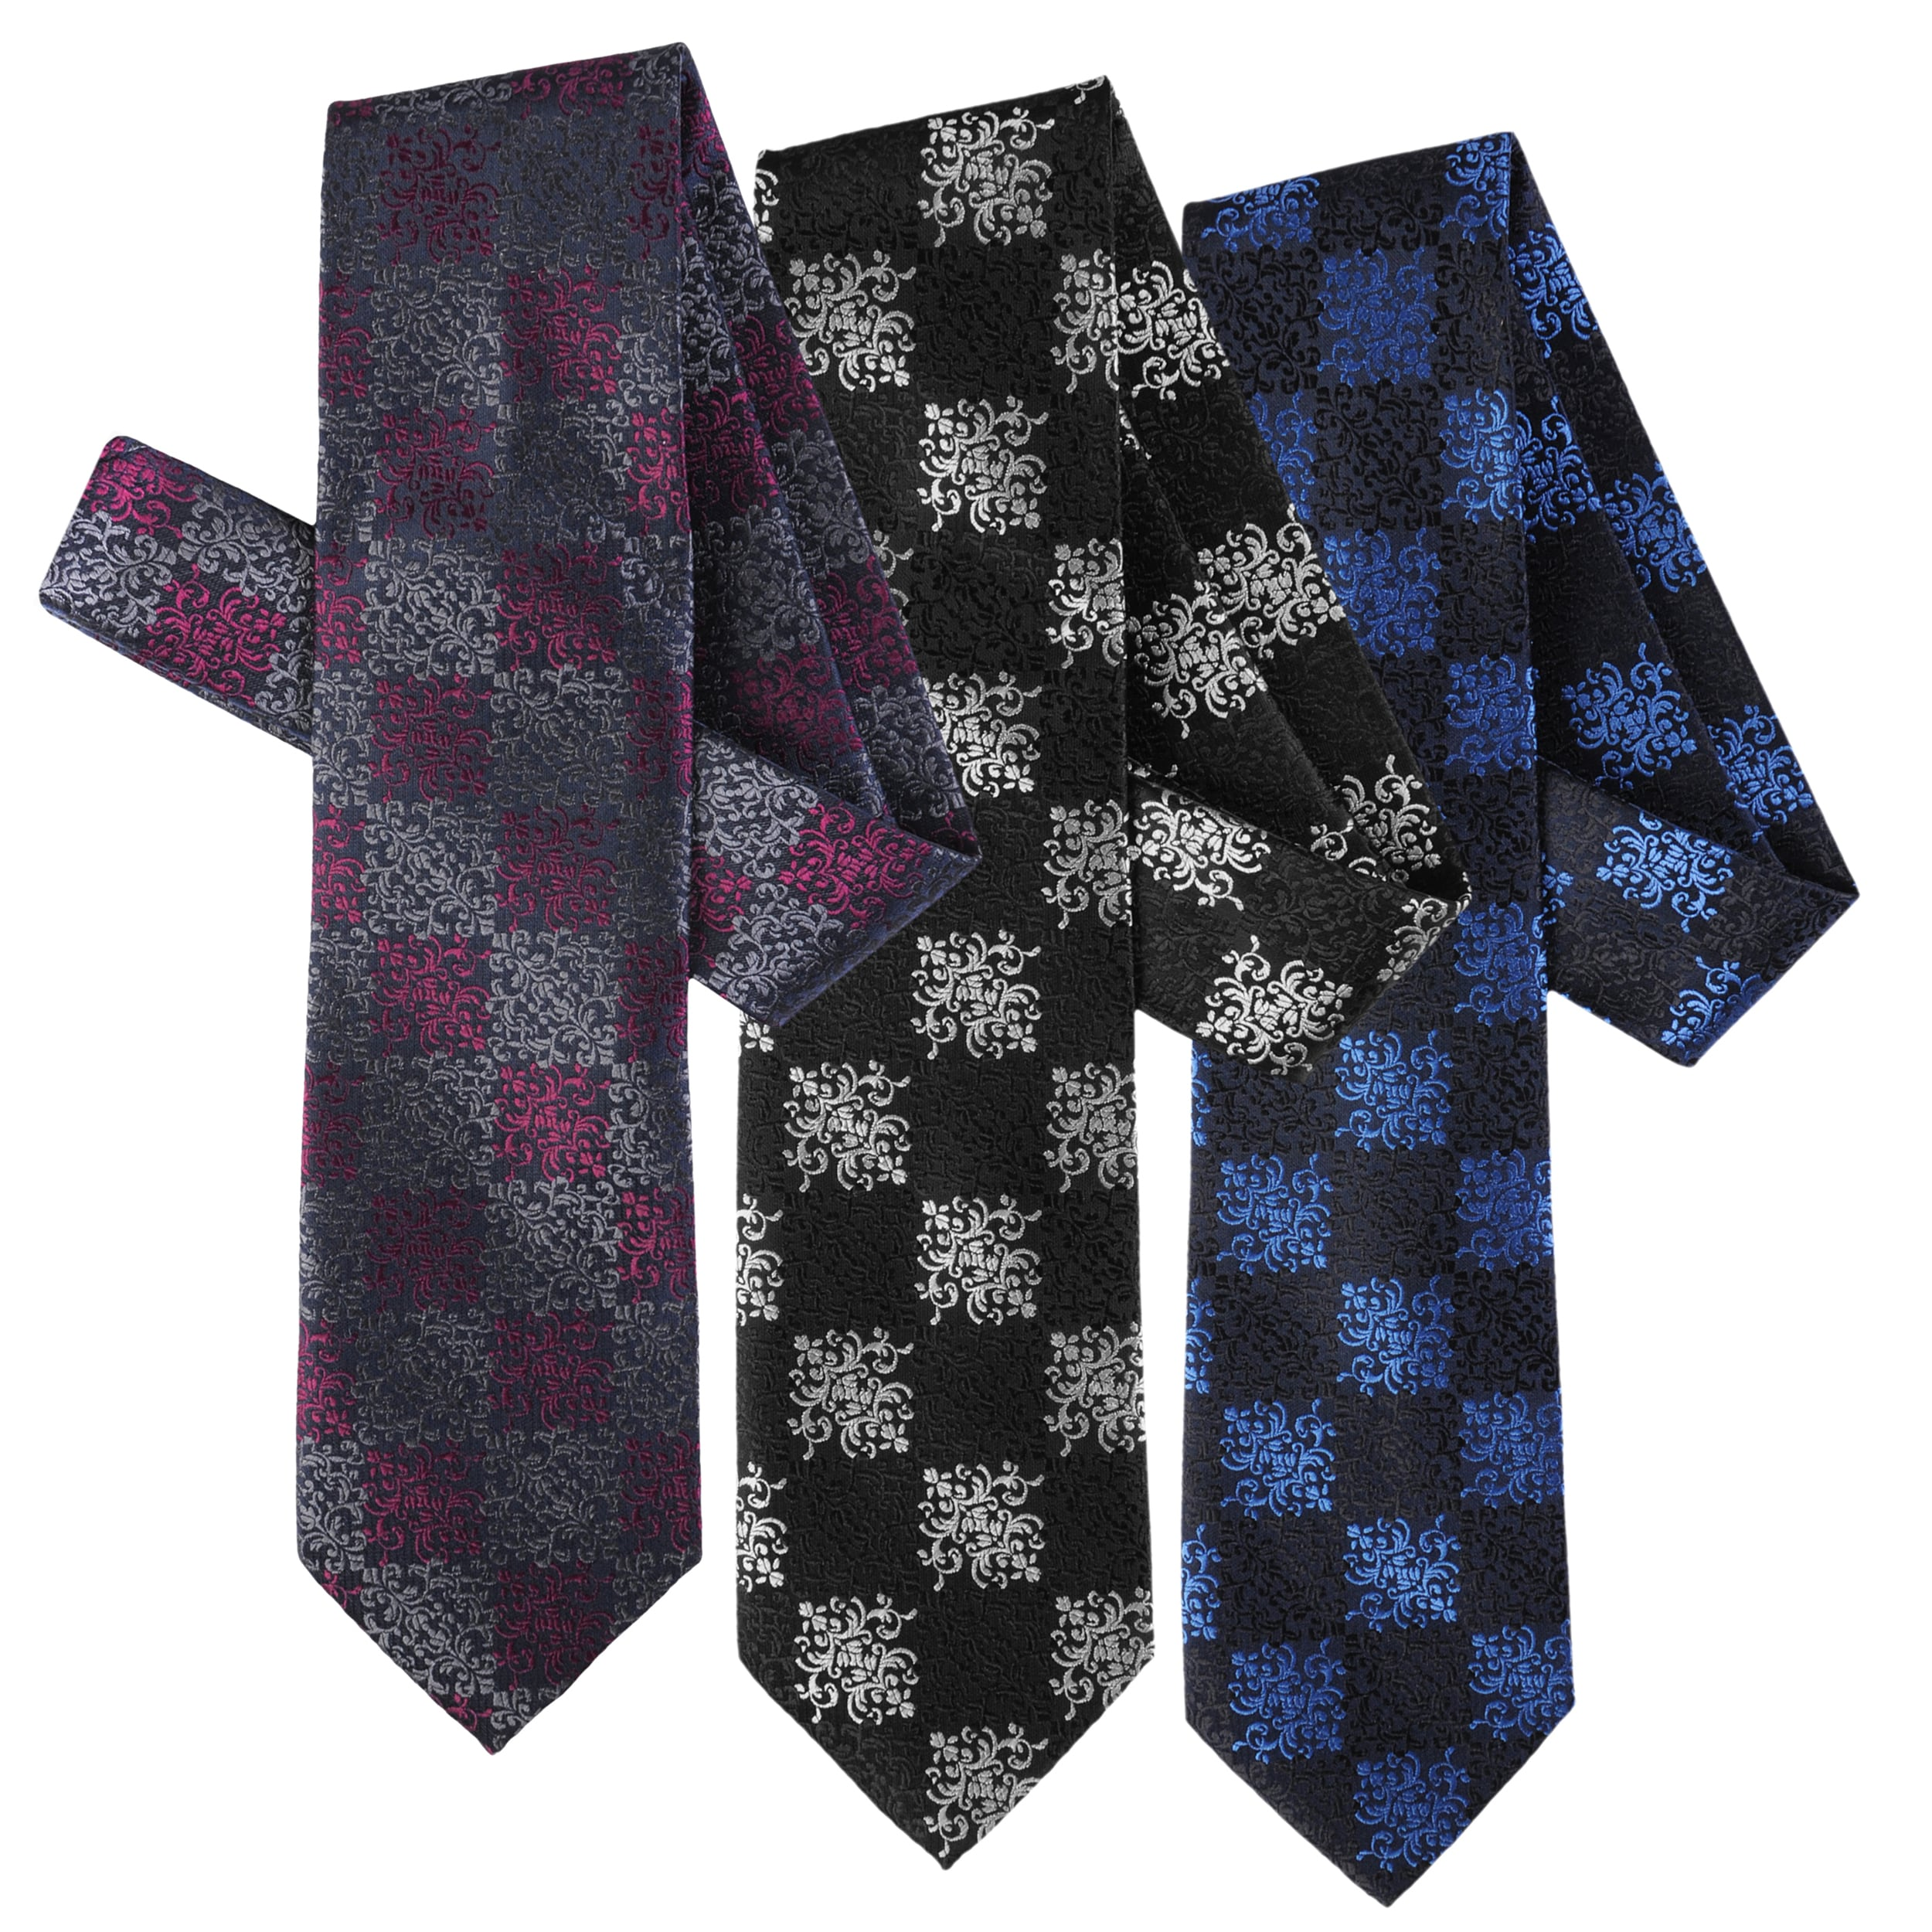 Boston Traveler Men's Scroll Pattern Microfiber Tie and Hanky Set